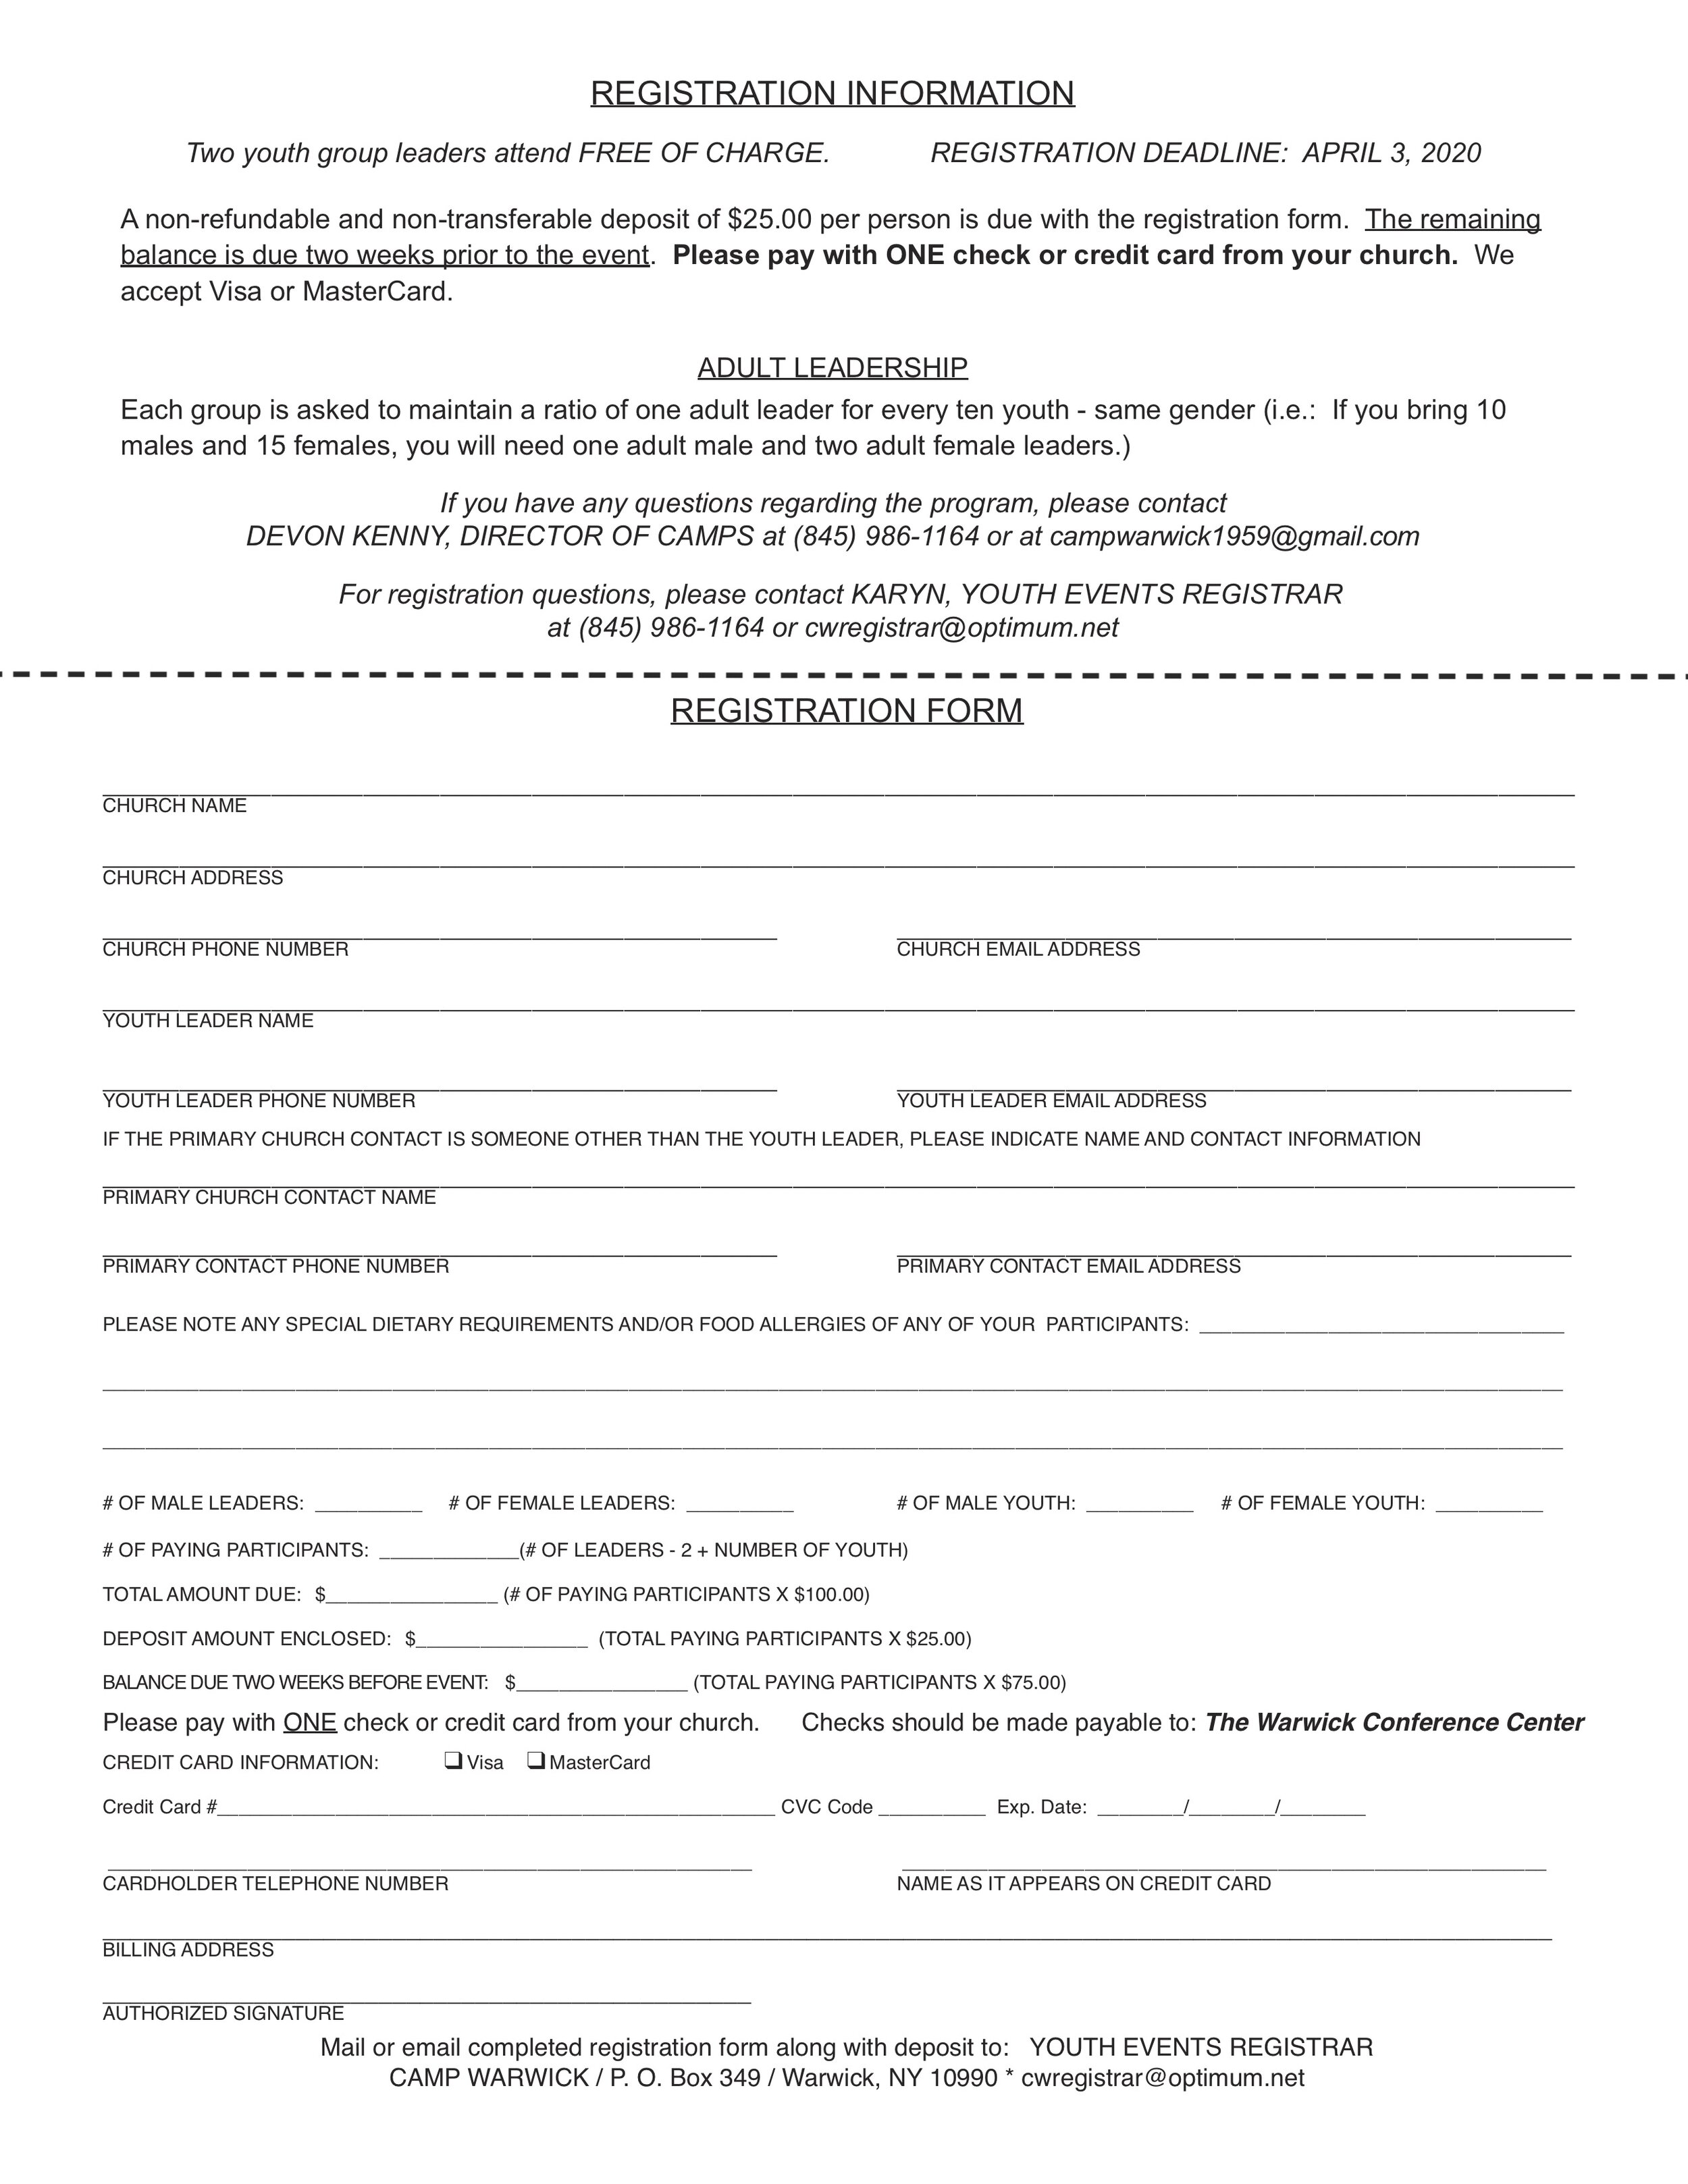 SPRING FLING 2020 REGISTRATION FORM.jpeg